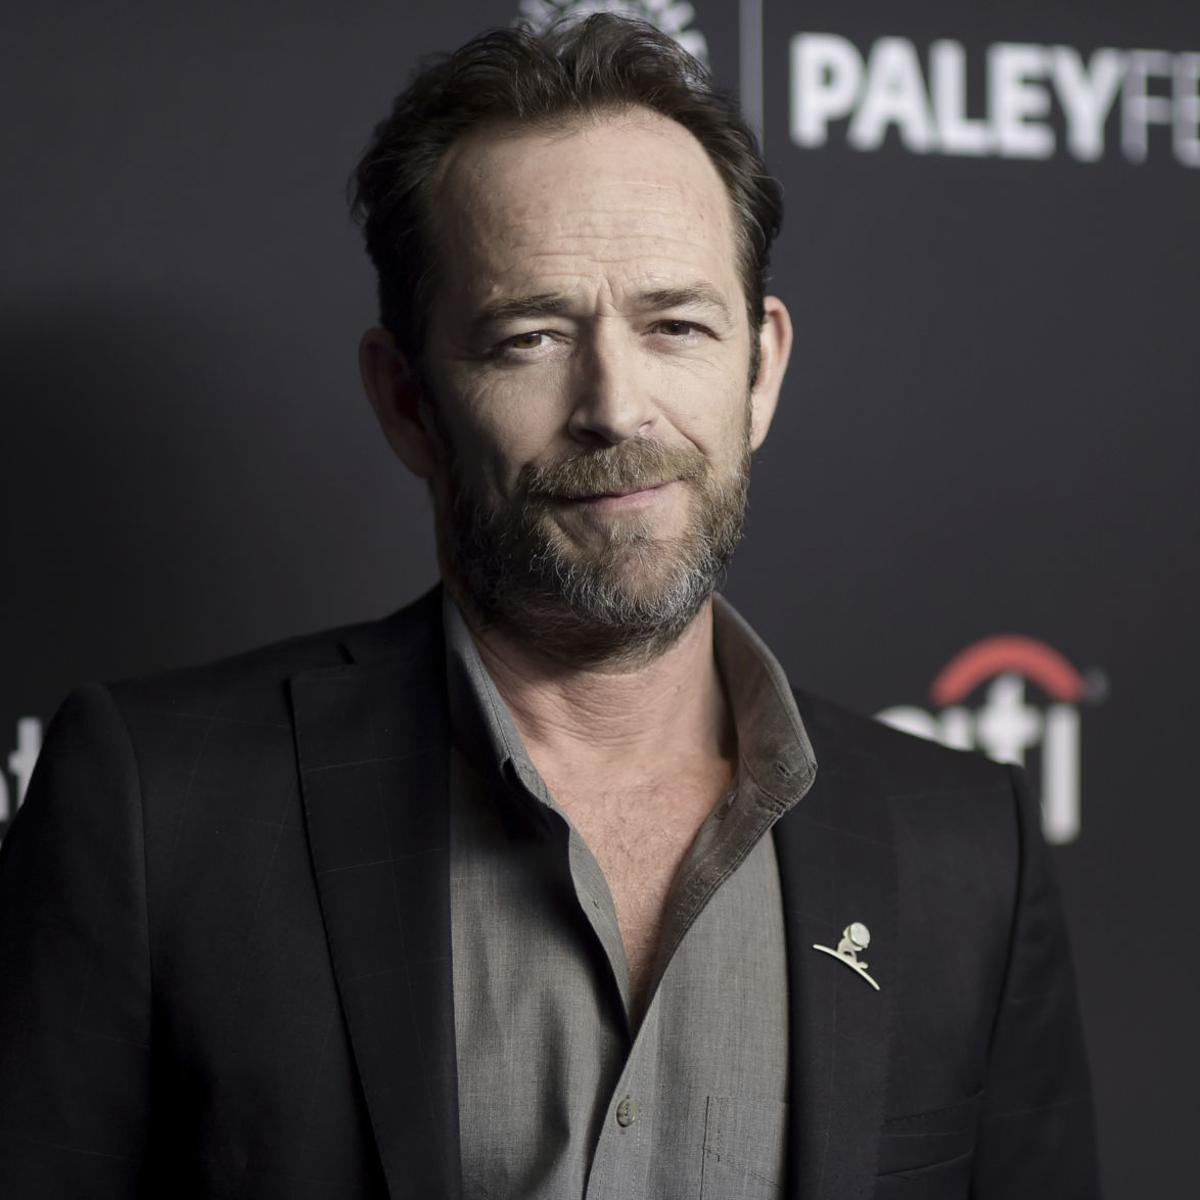 Actor Luke Perry of 'Beverly Hills, 90210' and 'Riverdale' fame dead